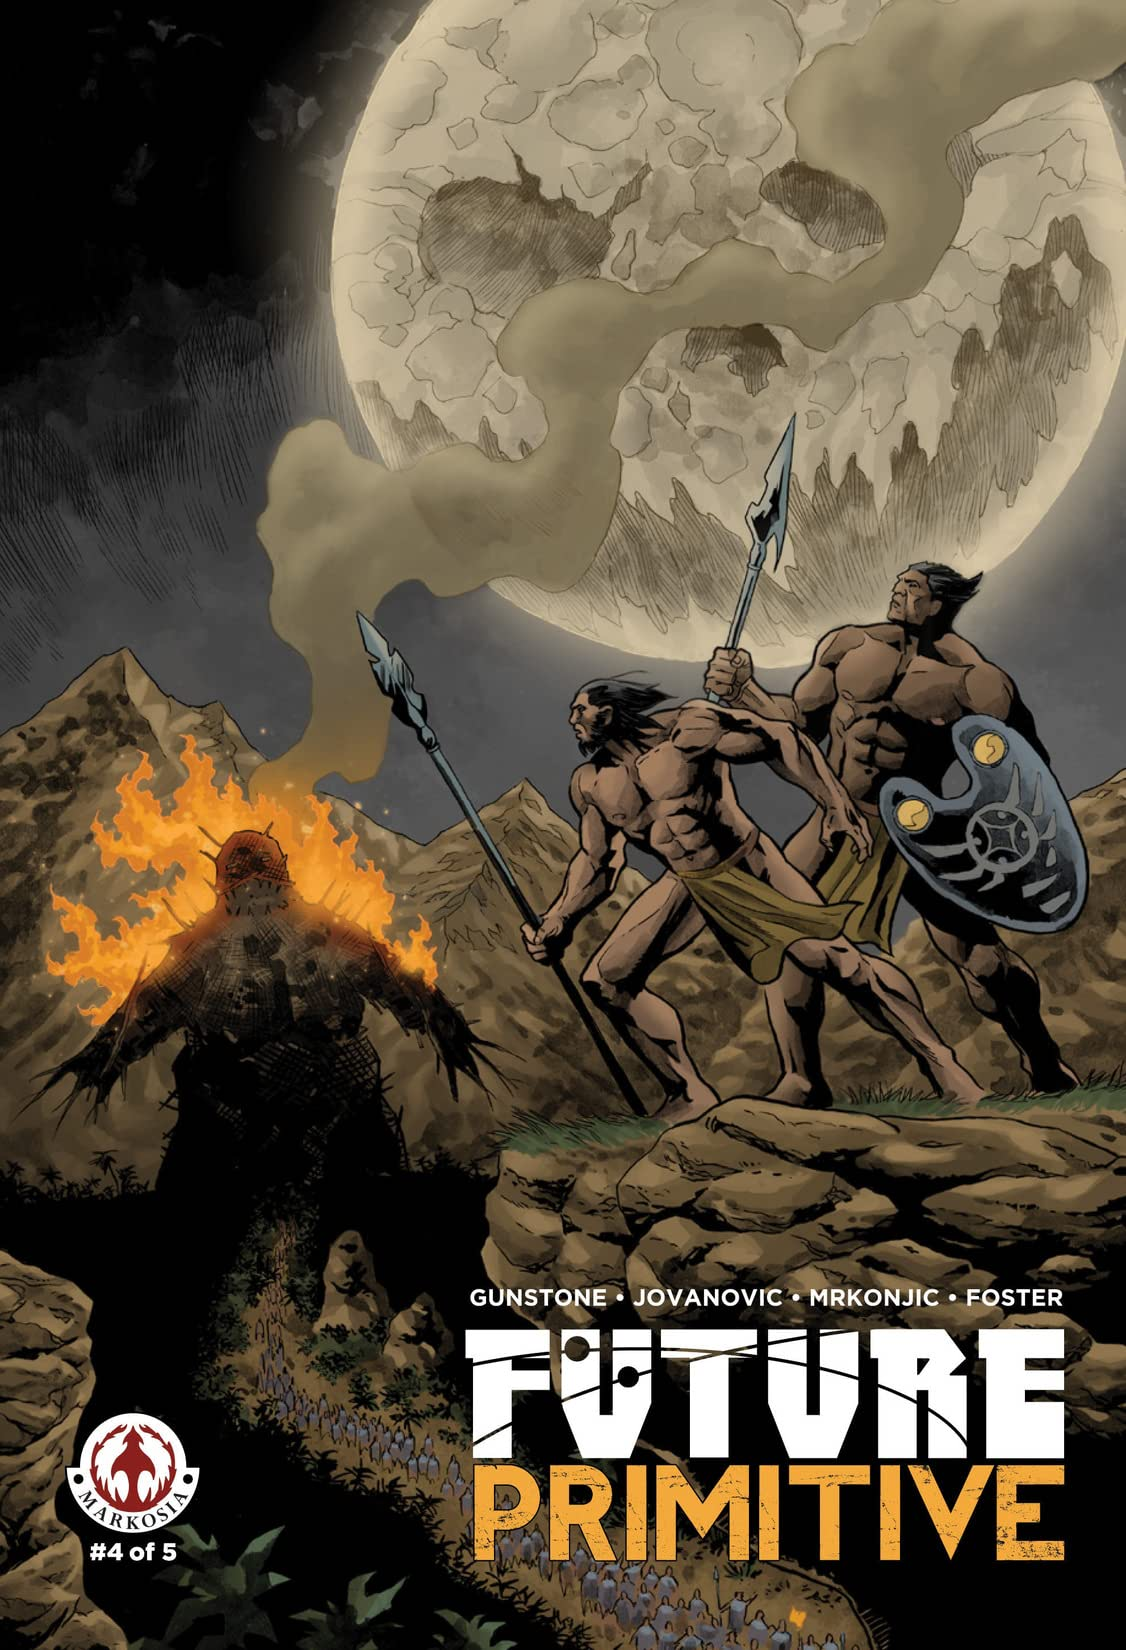 Future Primitive #4